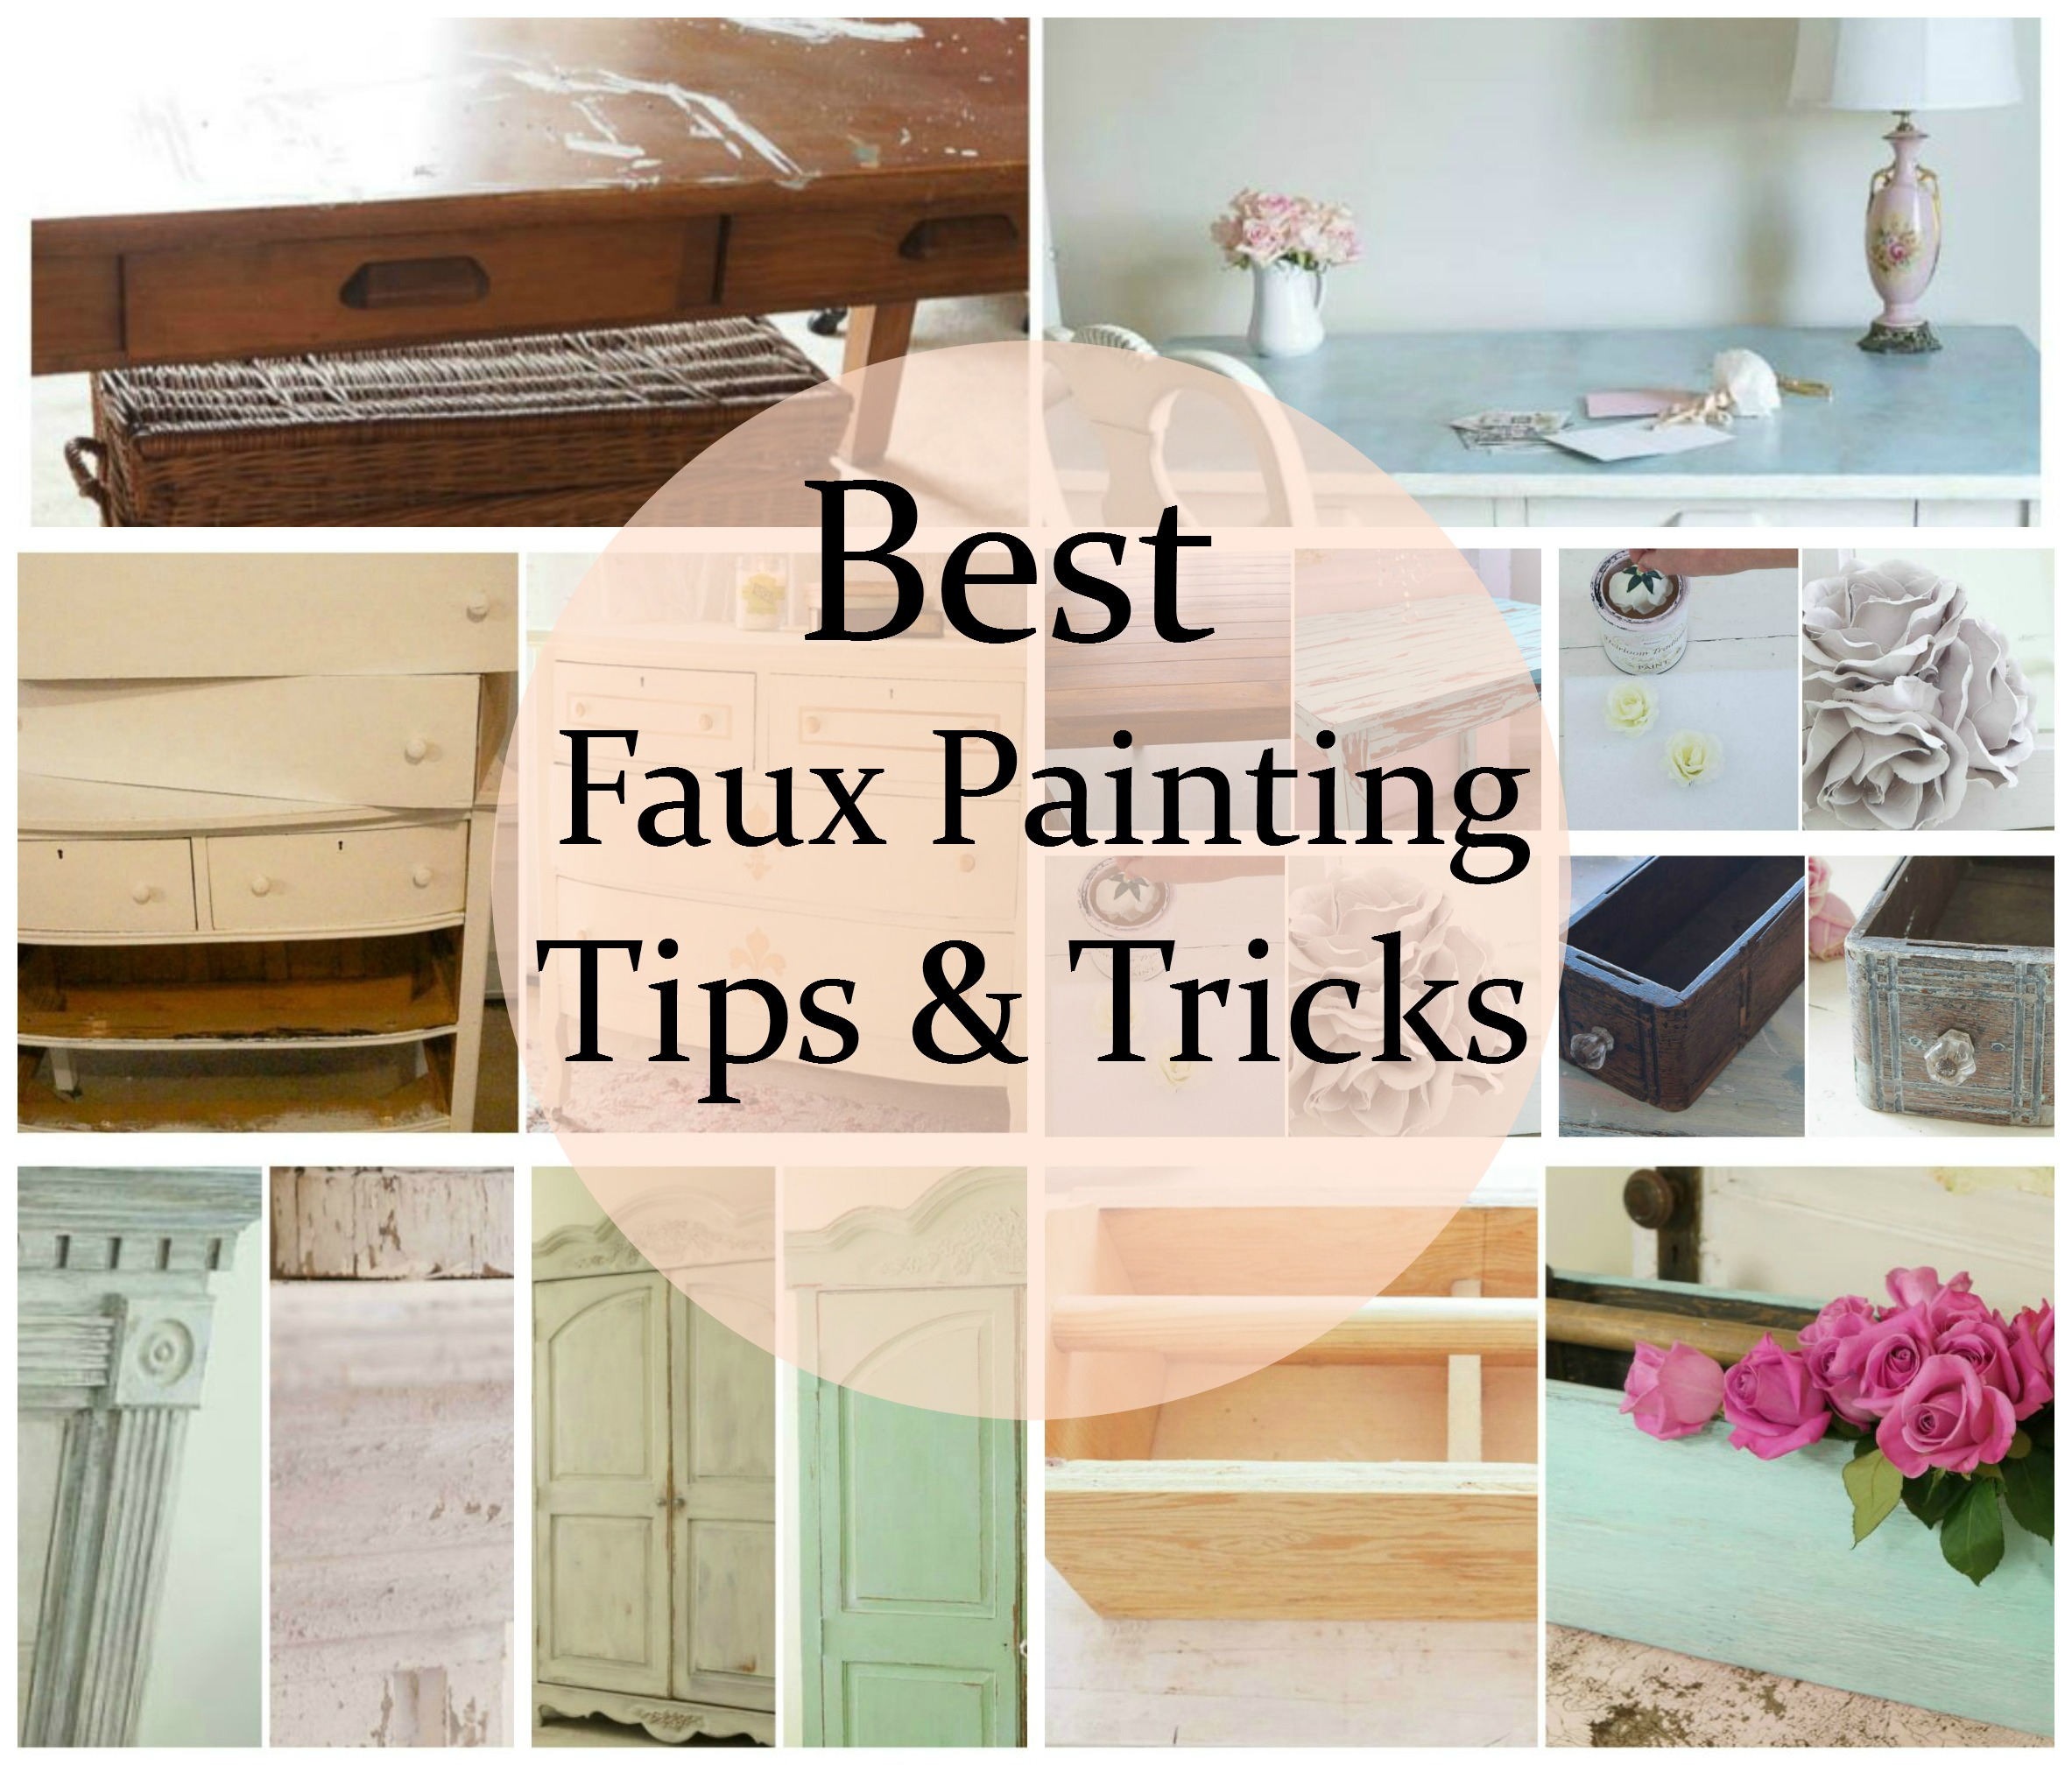 Best Faux Painting Tips Tricks White Lace Cottage